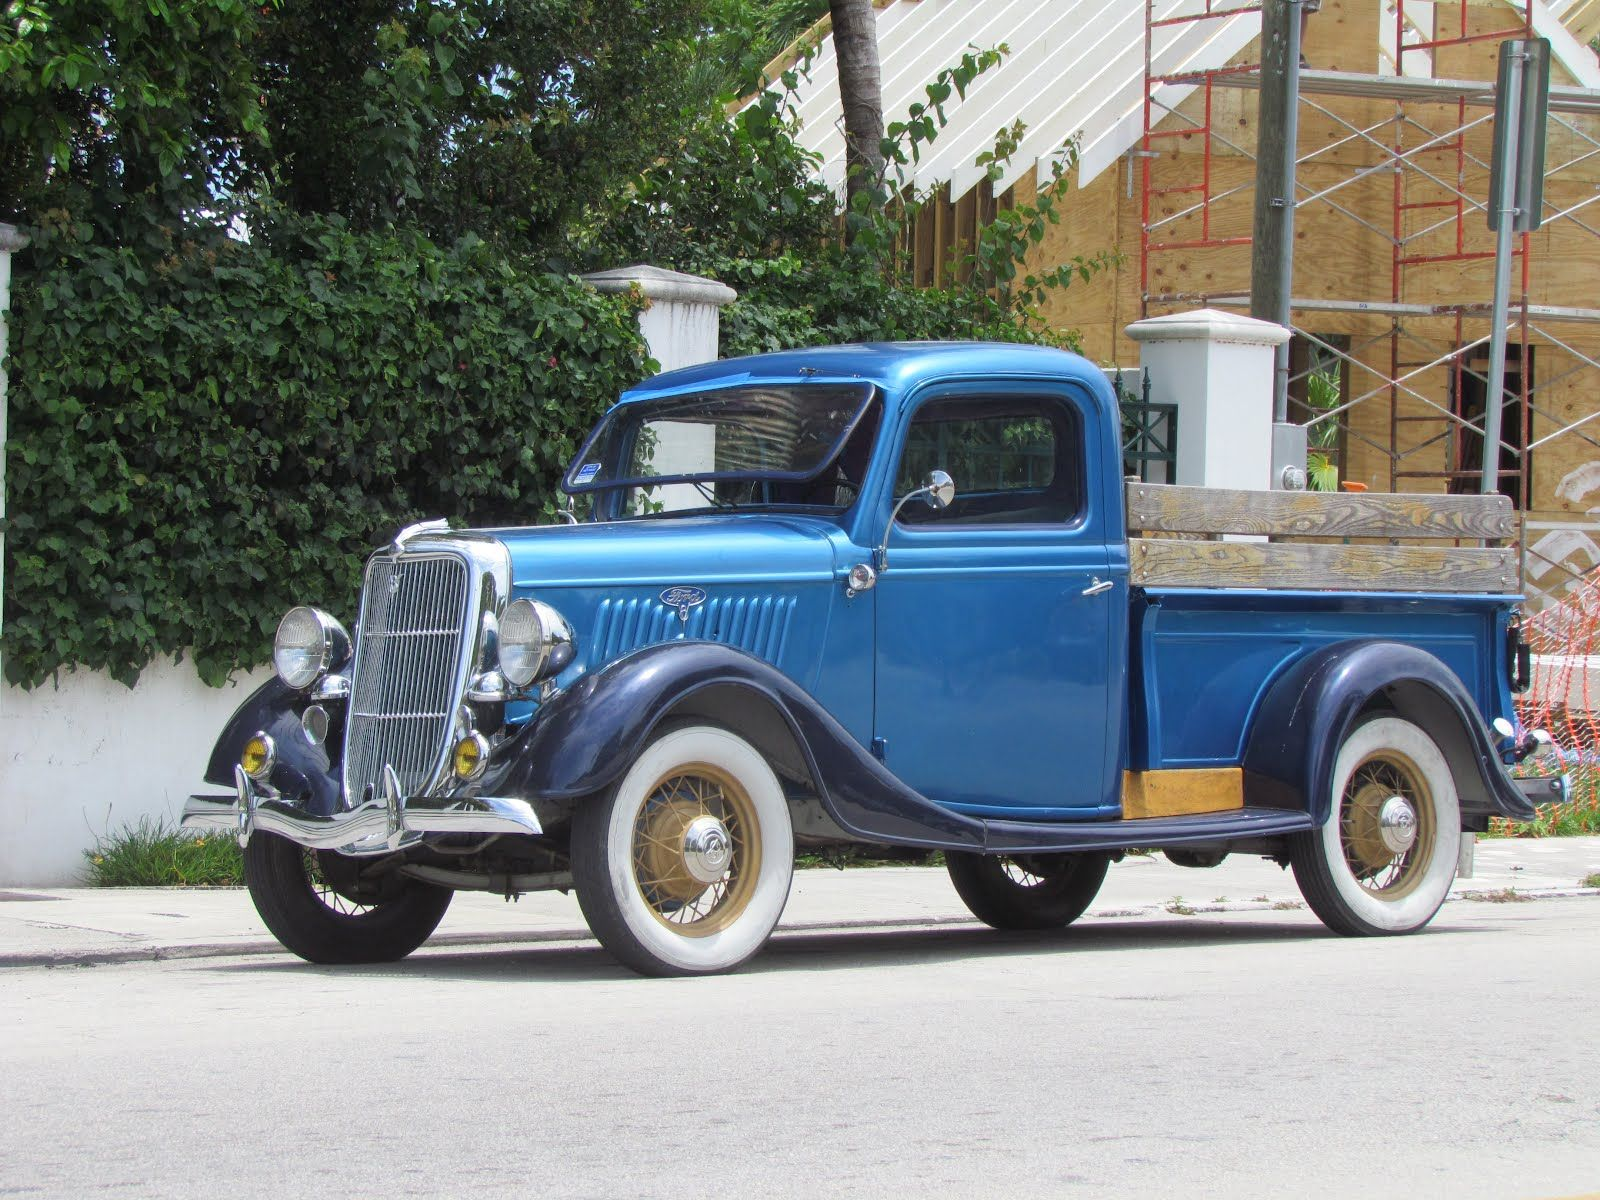 Old Classic Ford 4 Sale | Old Ford Truck in Key West, Florida on ...